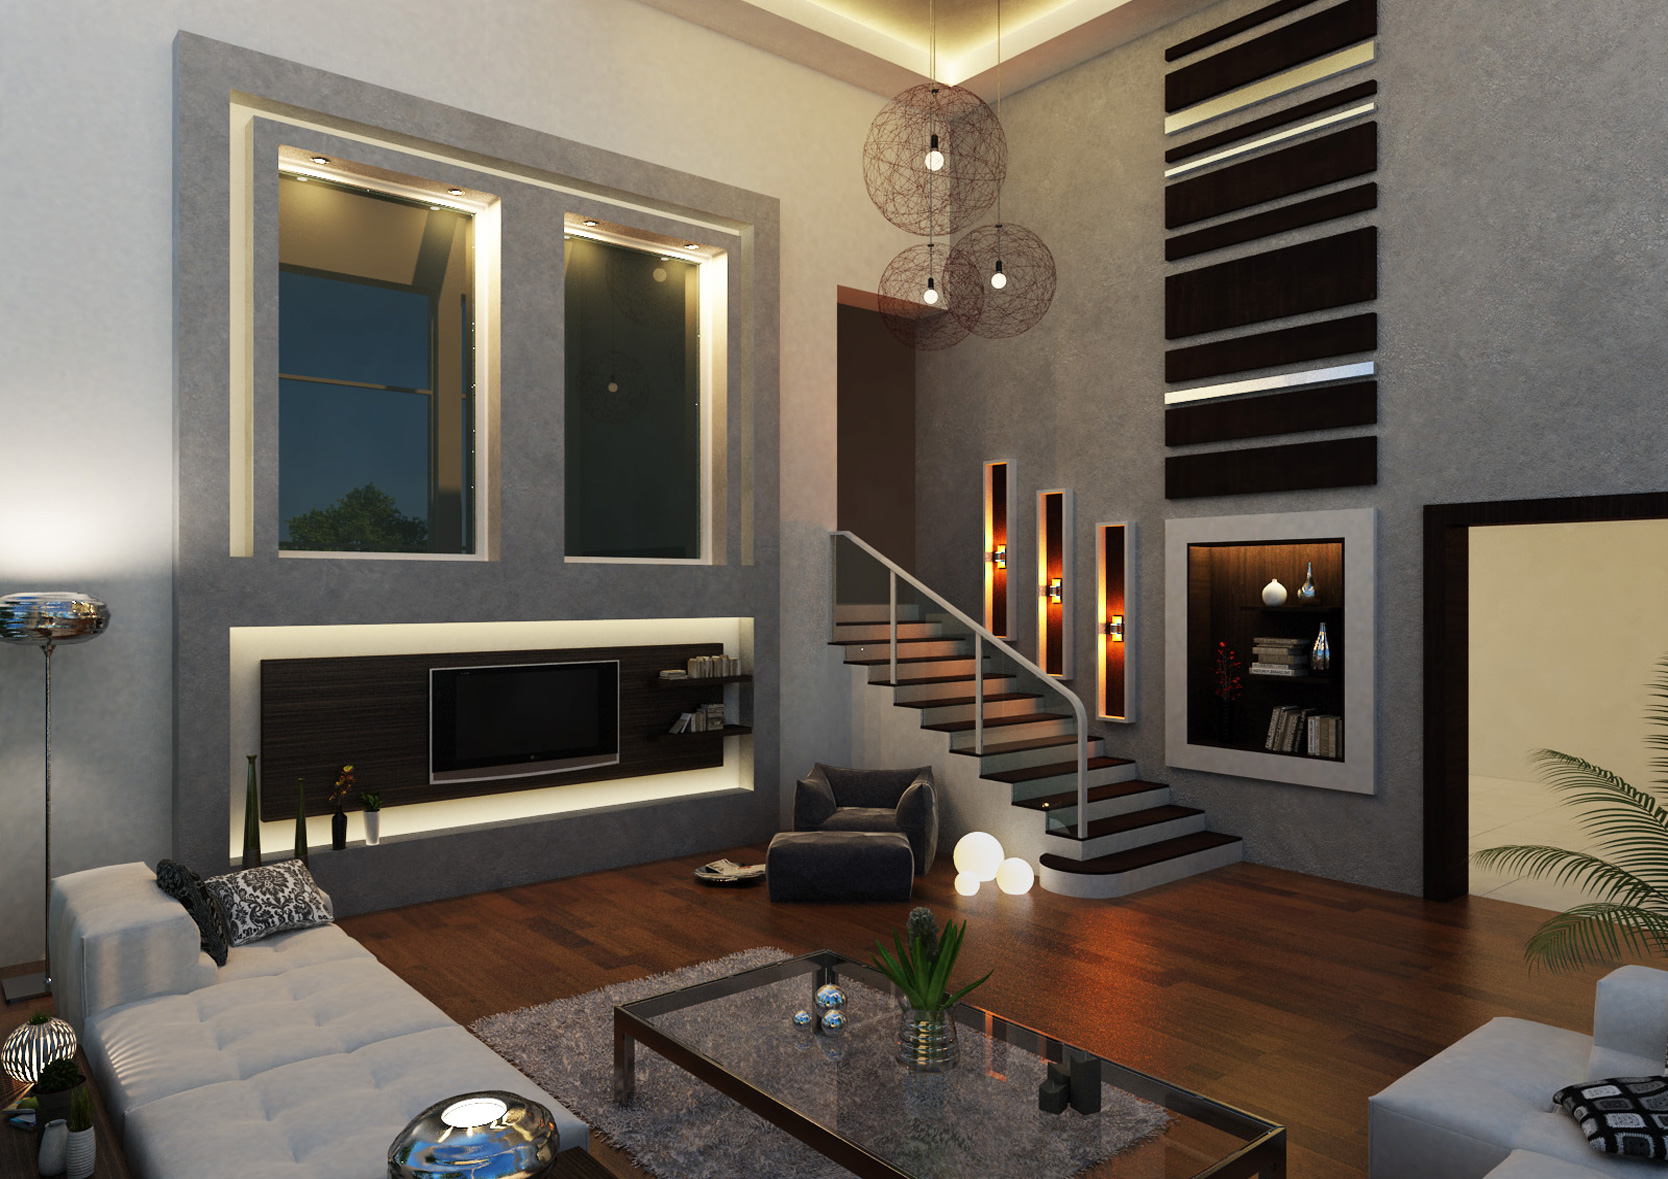 Villas - Living Room 1